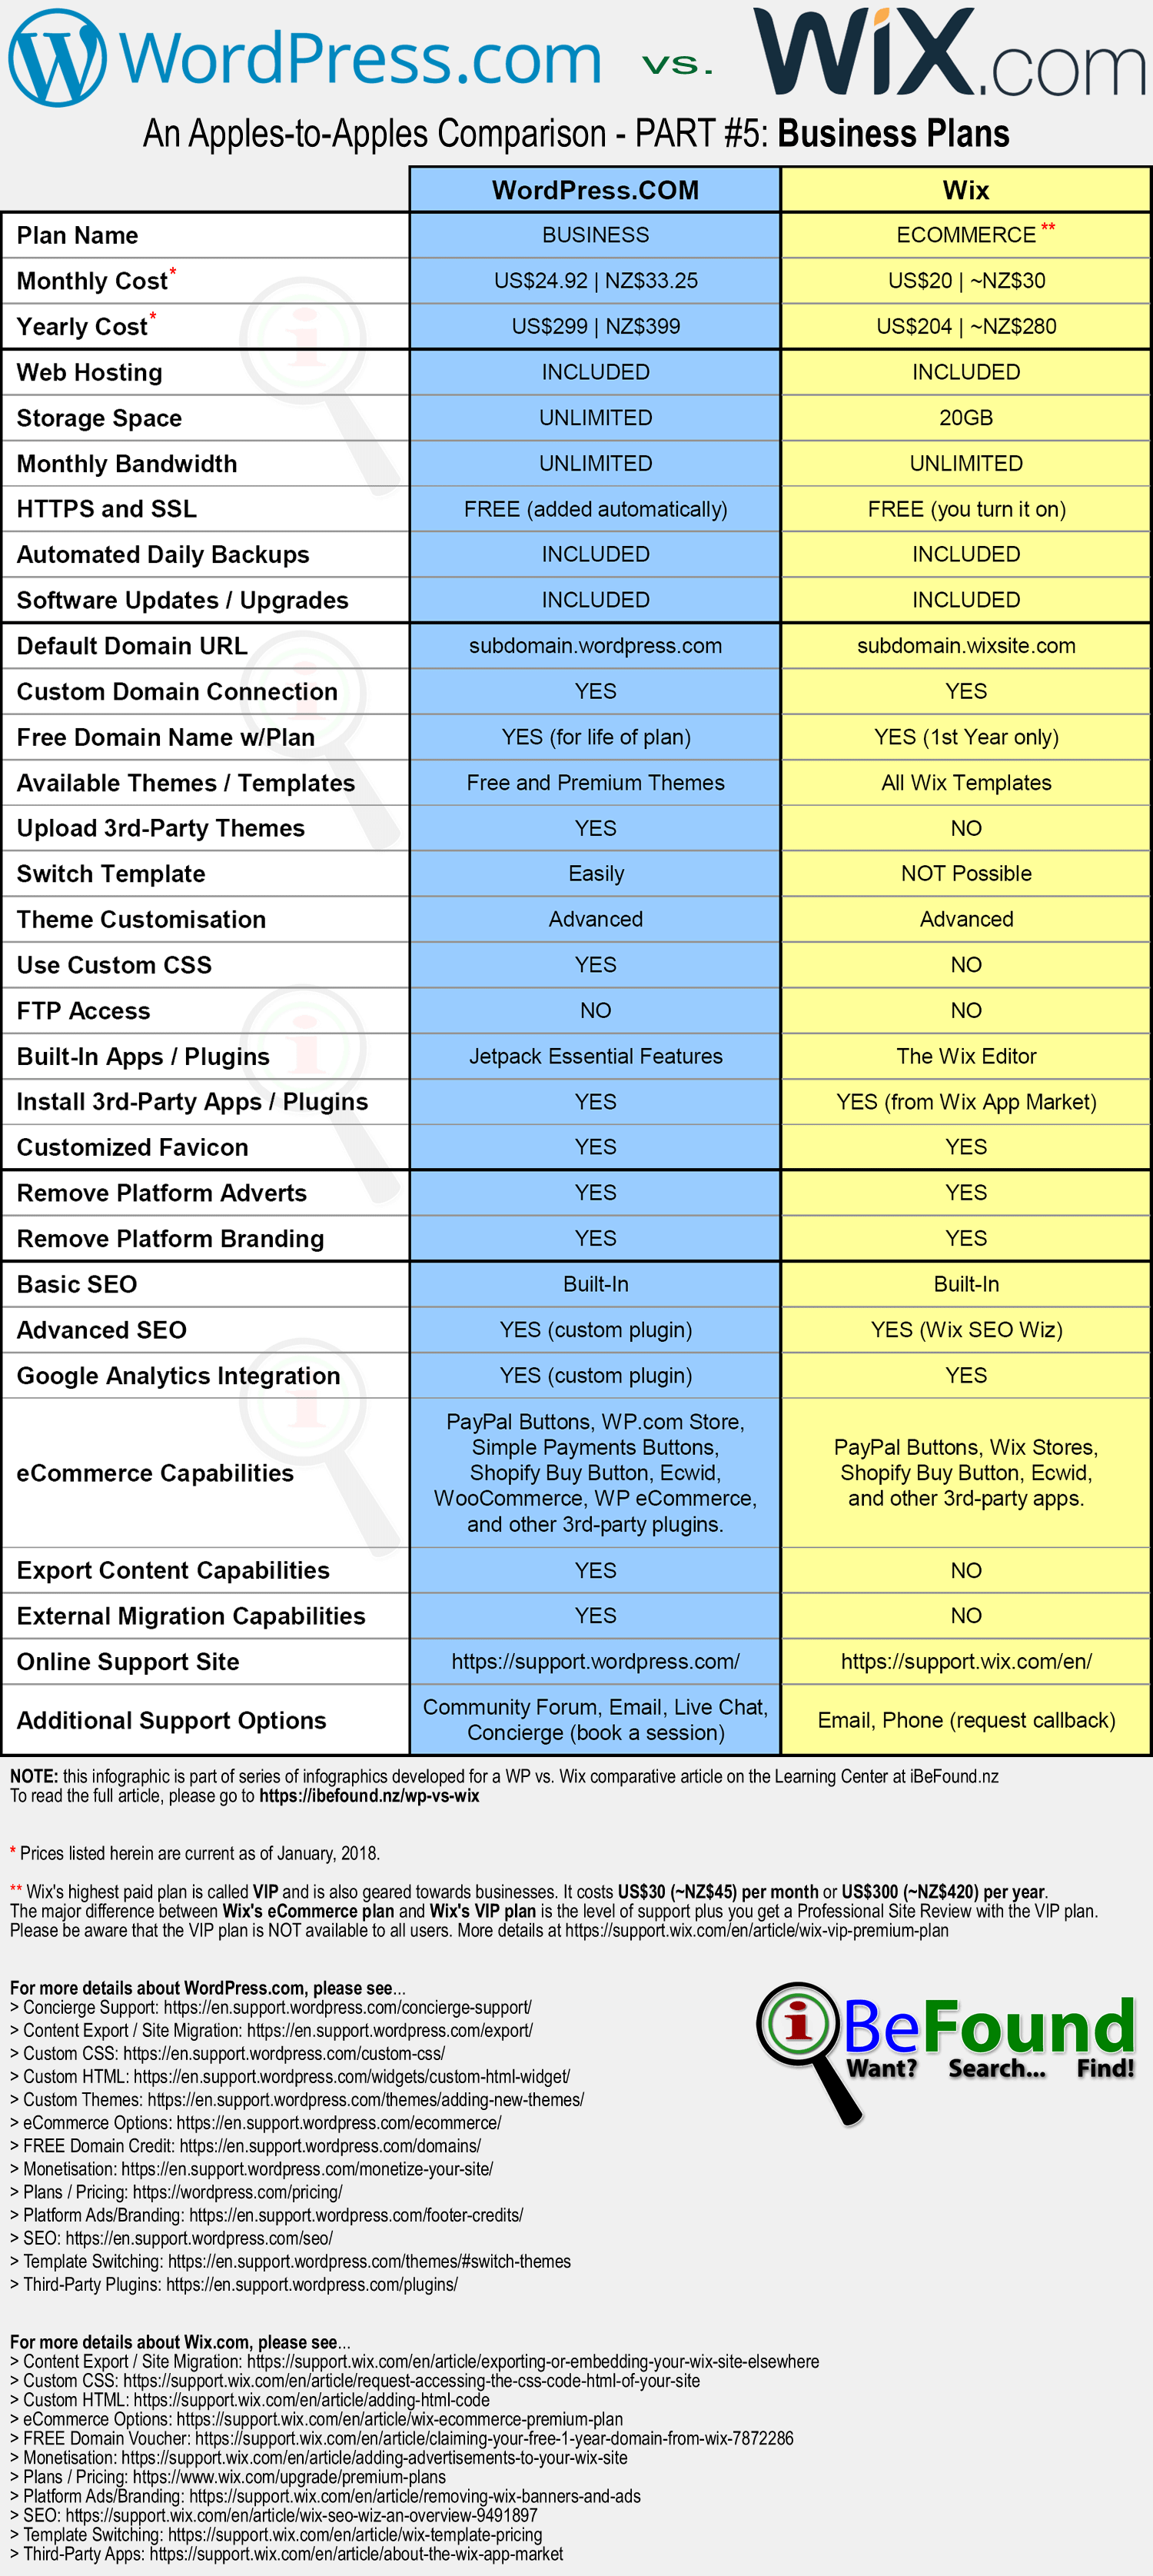 Hosted WordPress Versus Wix Comparison Infographic Pt5 Business Plans By iBeFound Digital Marketing Division